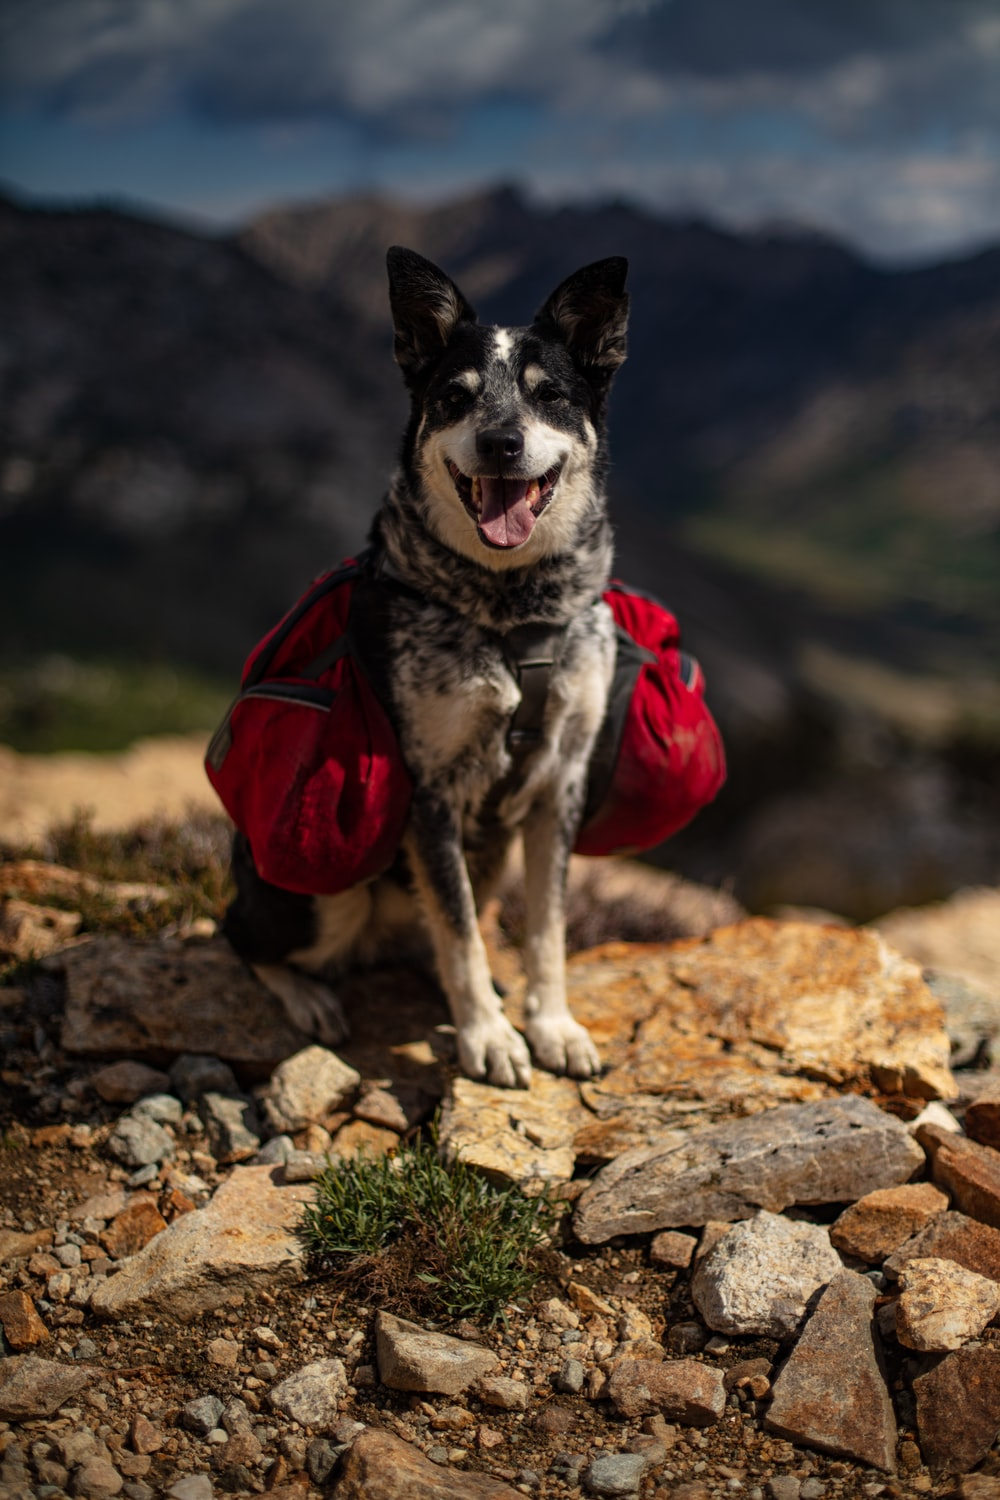 adult short-coated black and white dog with red bag on back on brown stones